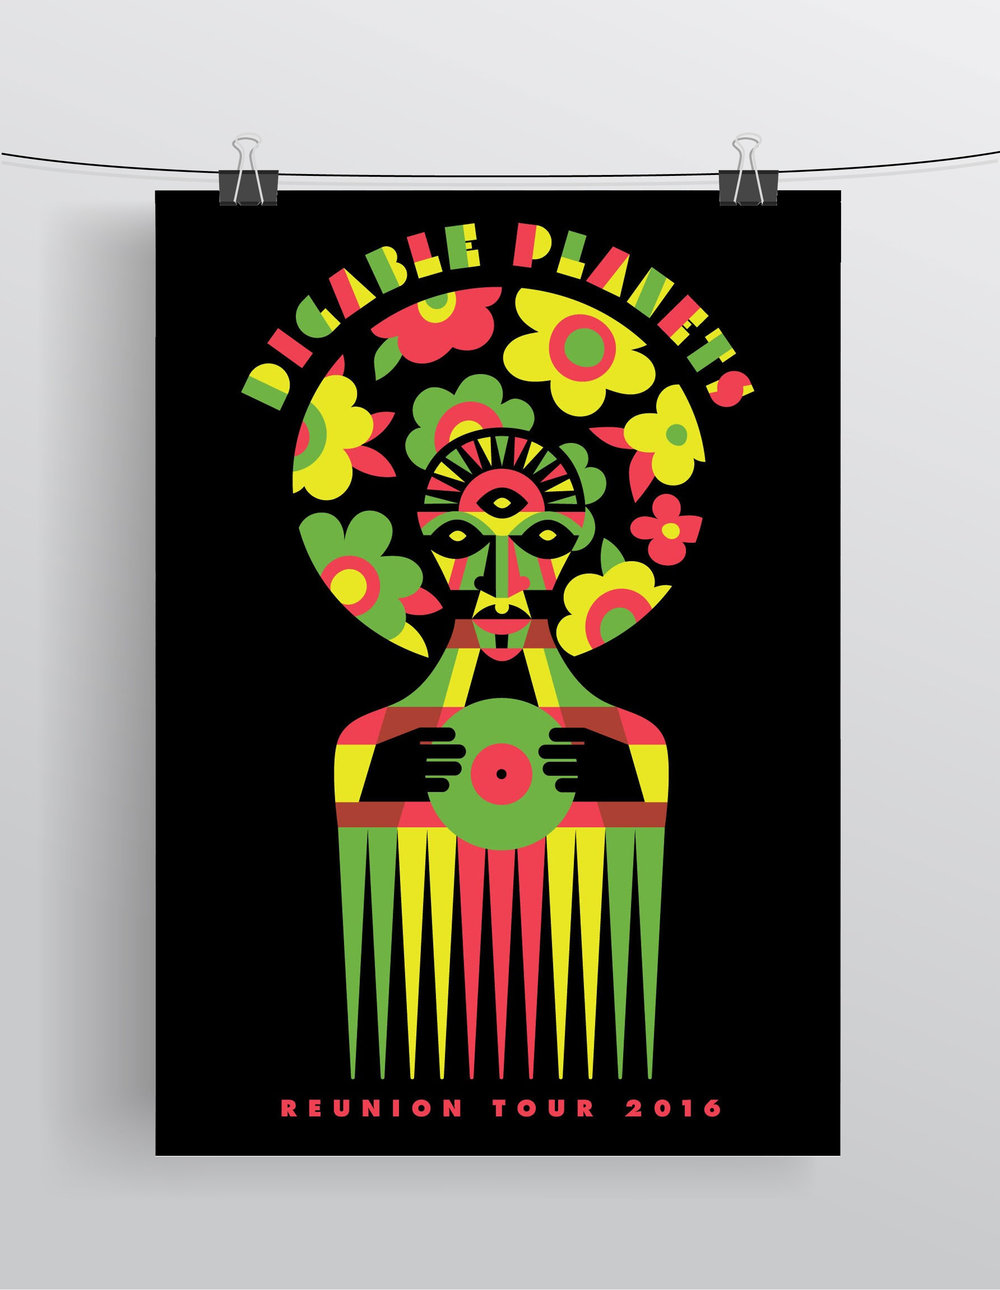 digable-planets-reunion-tour-poster